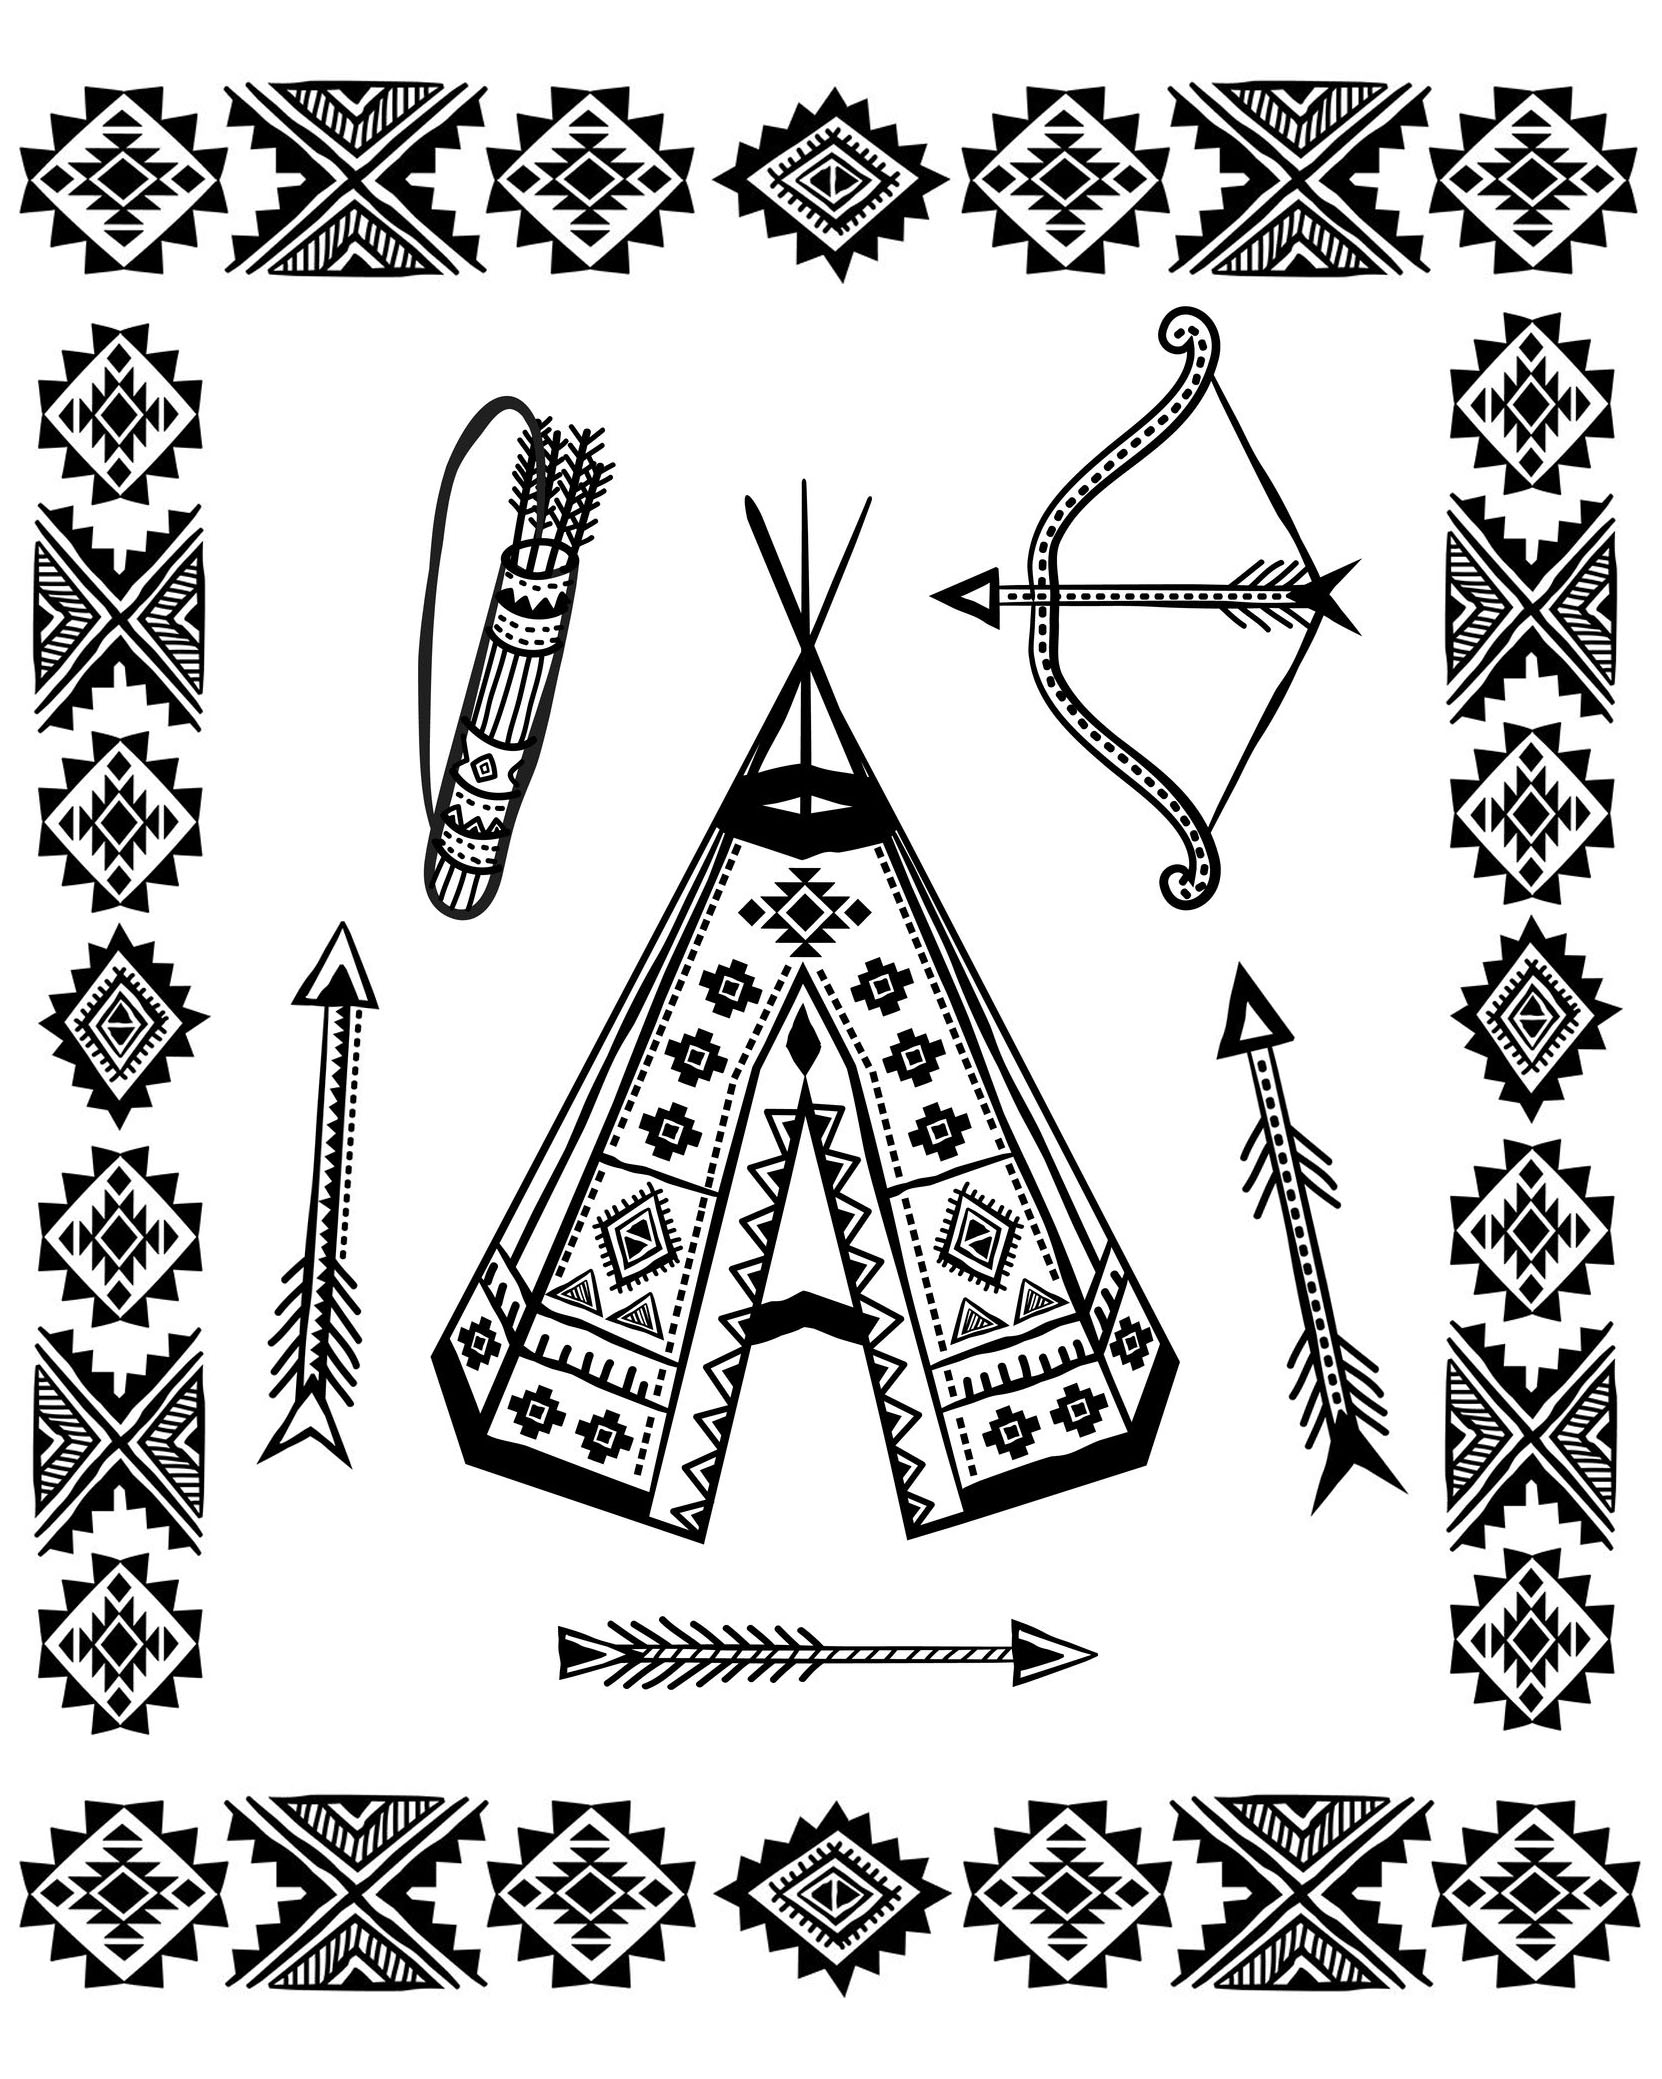 coloring page with a tipi and other symbols from the gallery native americans - Native American Coloring Book